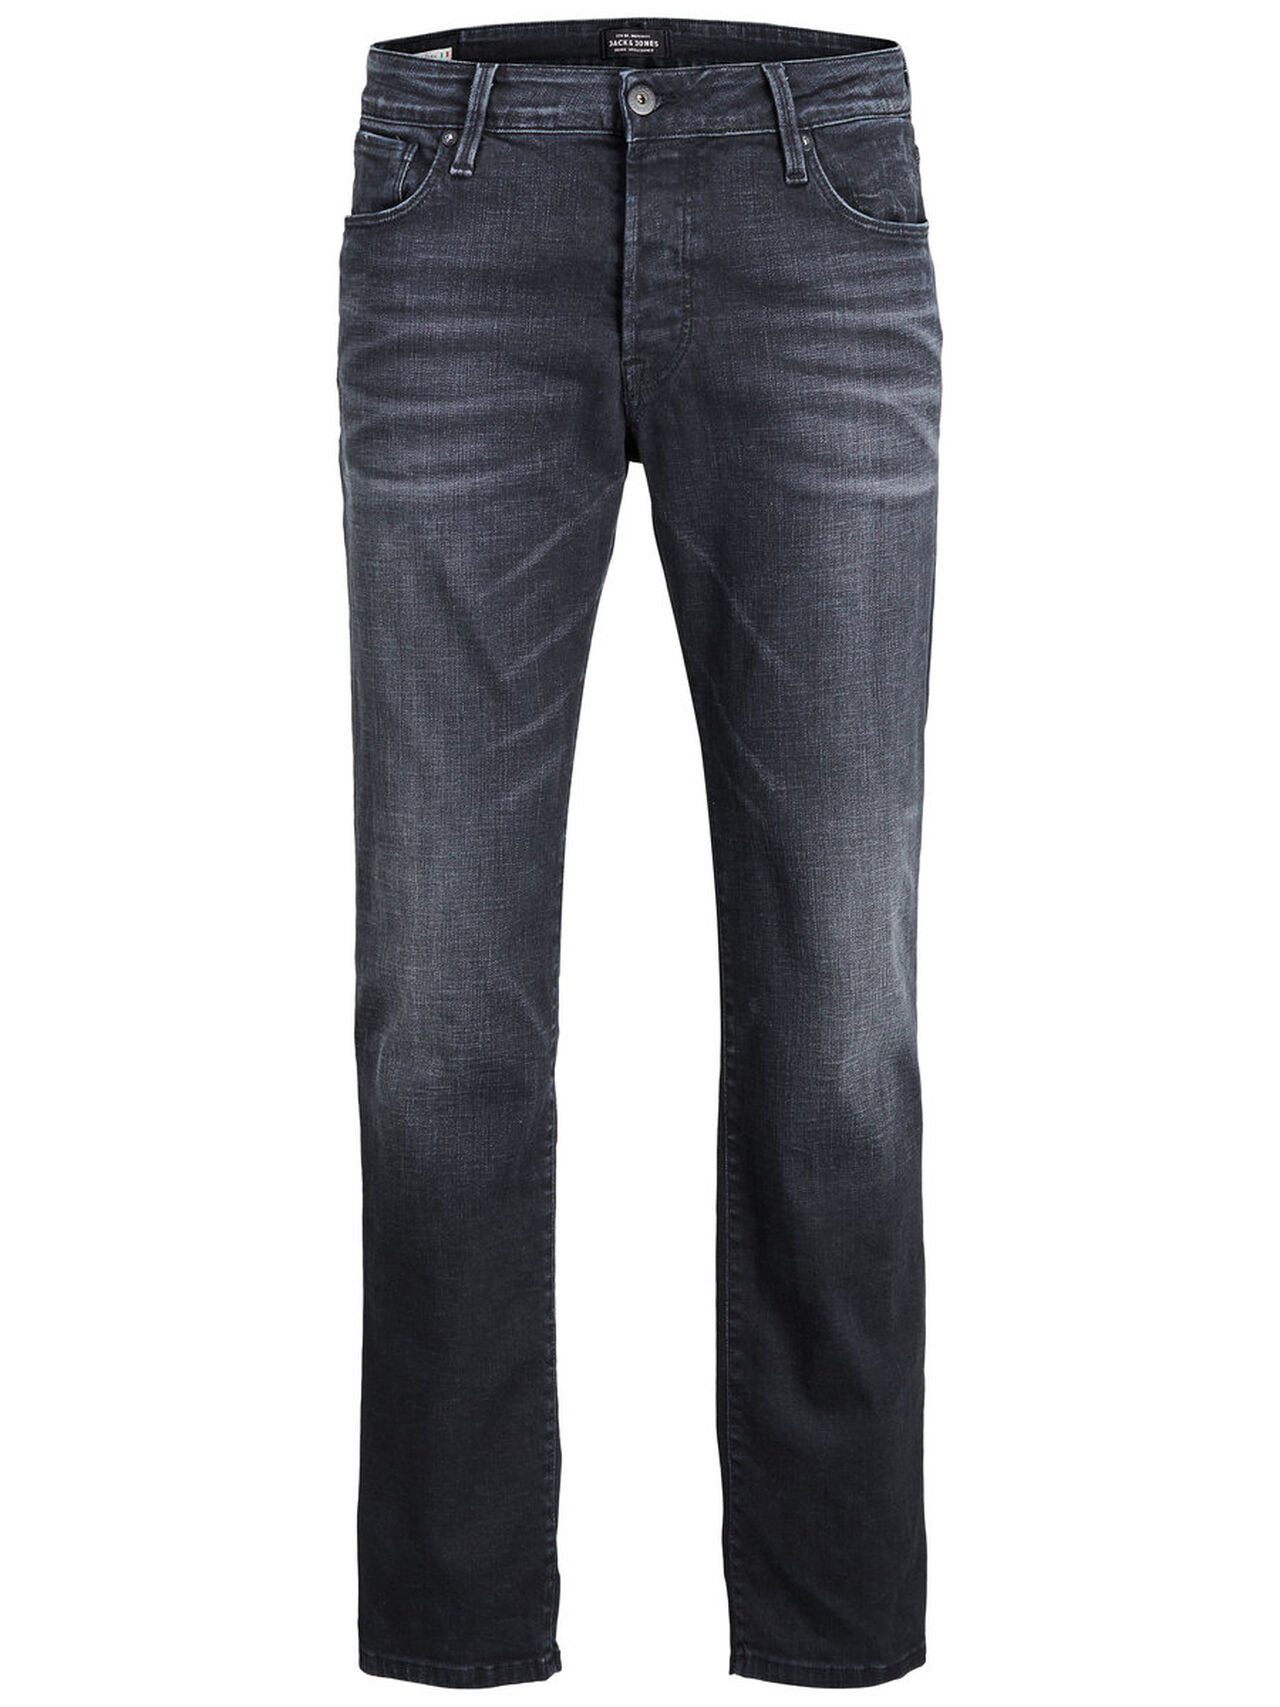 Clark Icon Bl 774 50sps Regular Fit Jeans